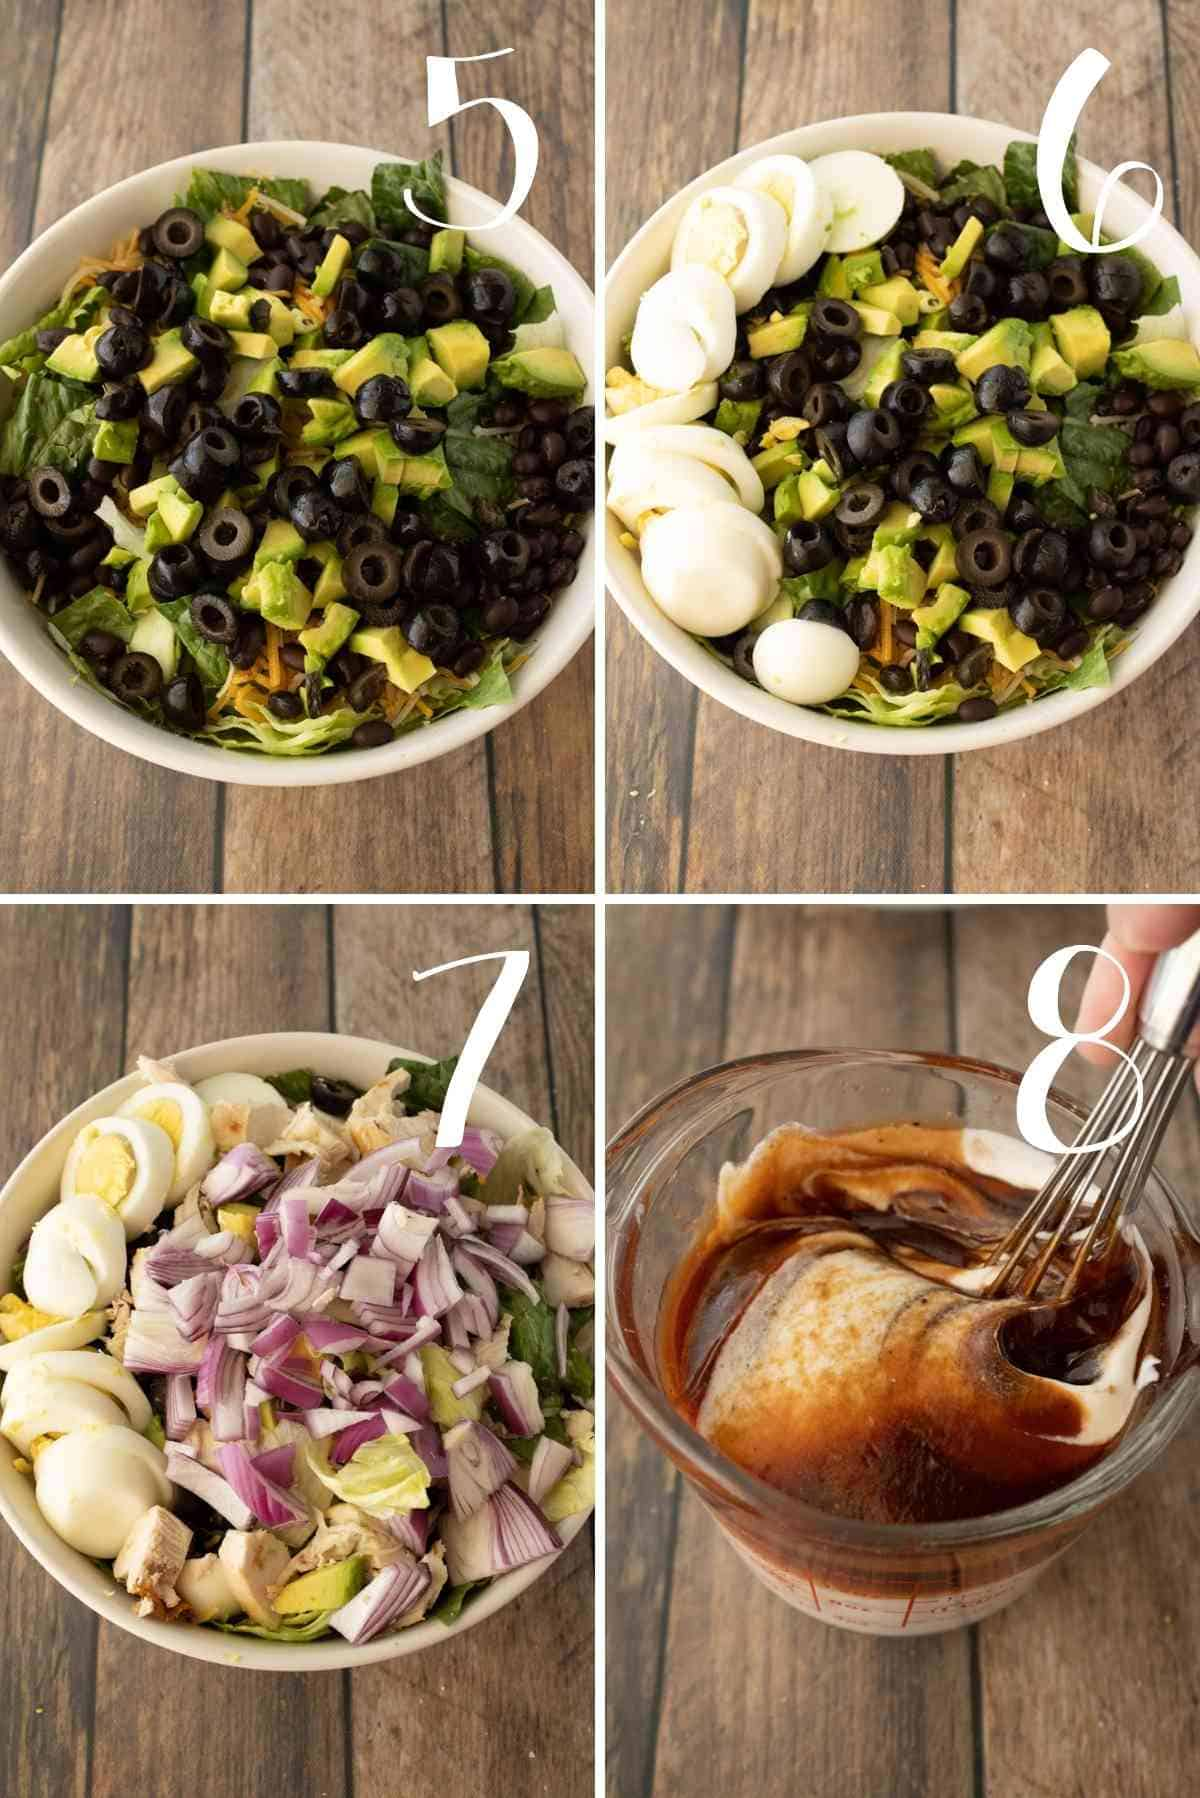 Sliced olives, sliced hard boiled eggs, and chopped red onions add to the lettuces.